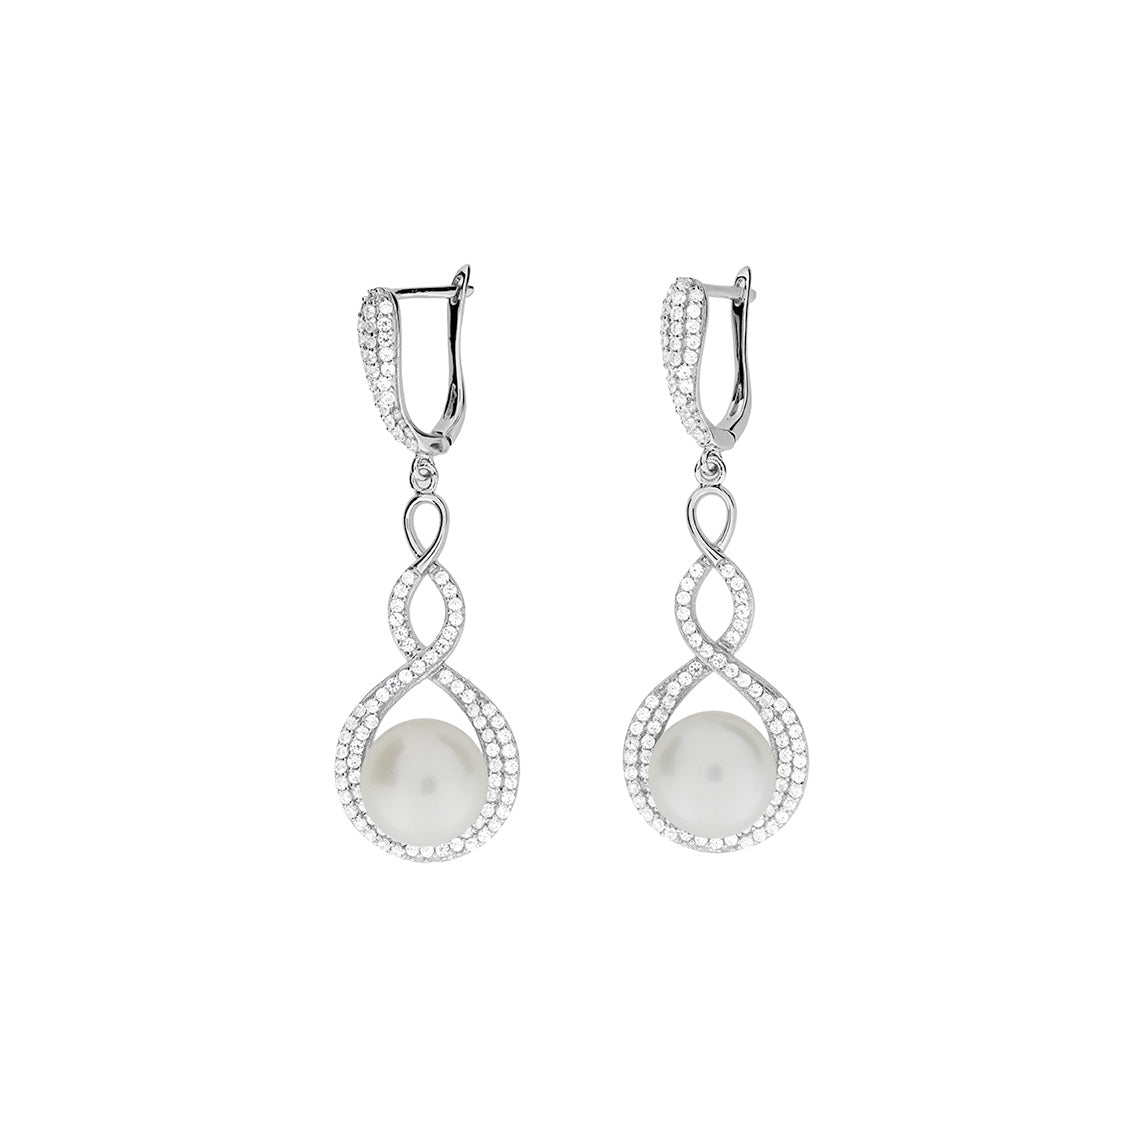 Silver & Pavé Twisting Pearl Earrings